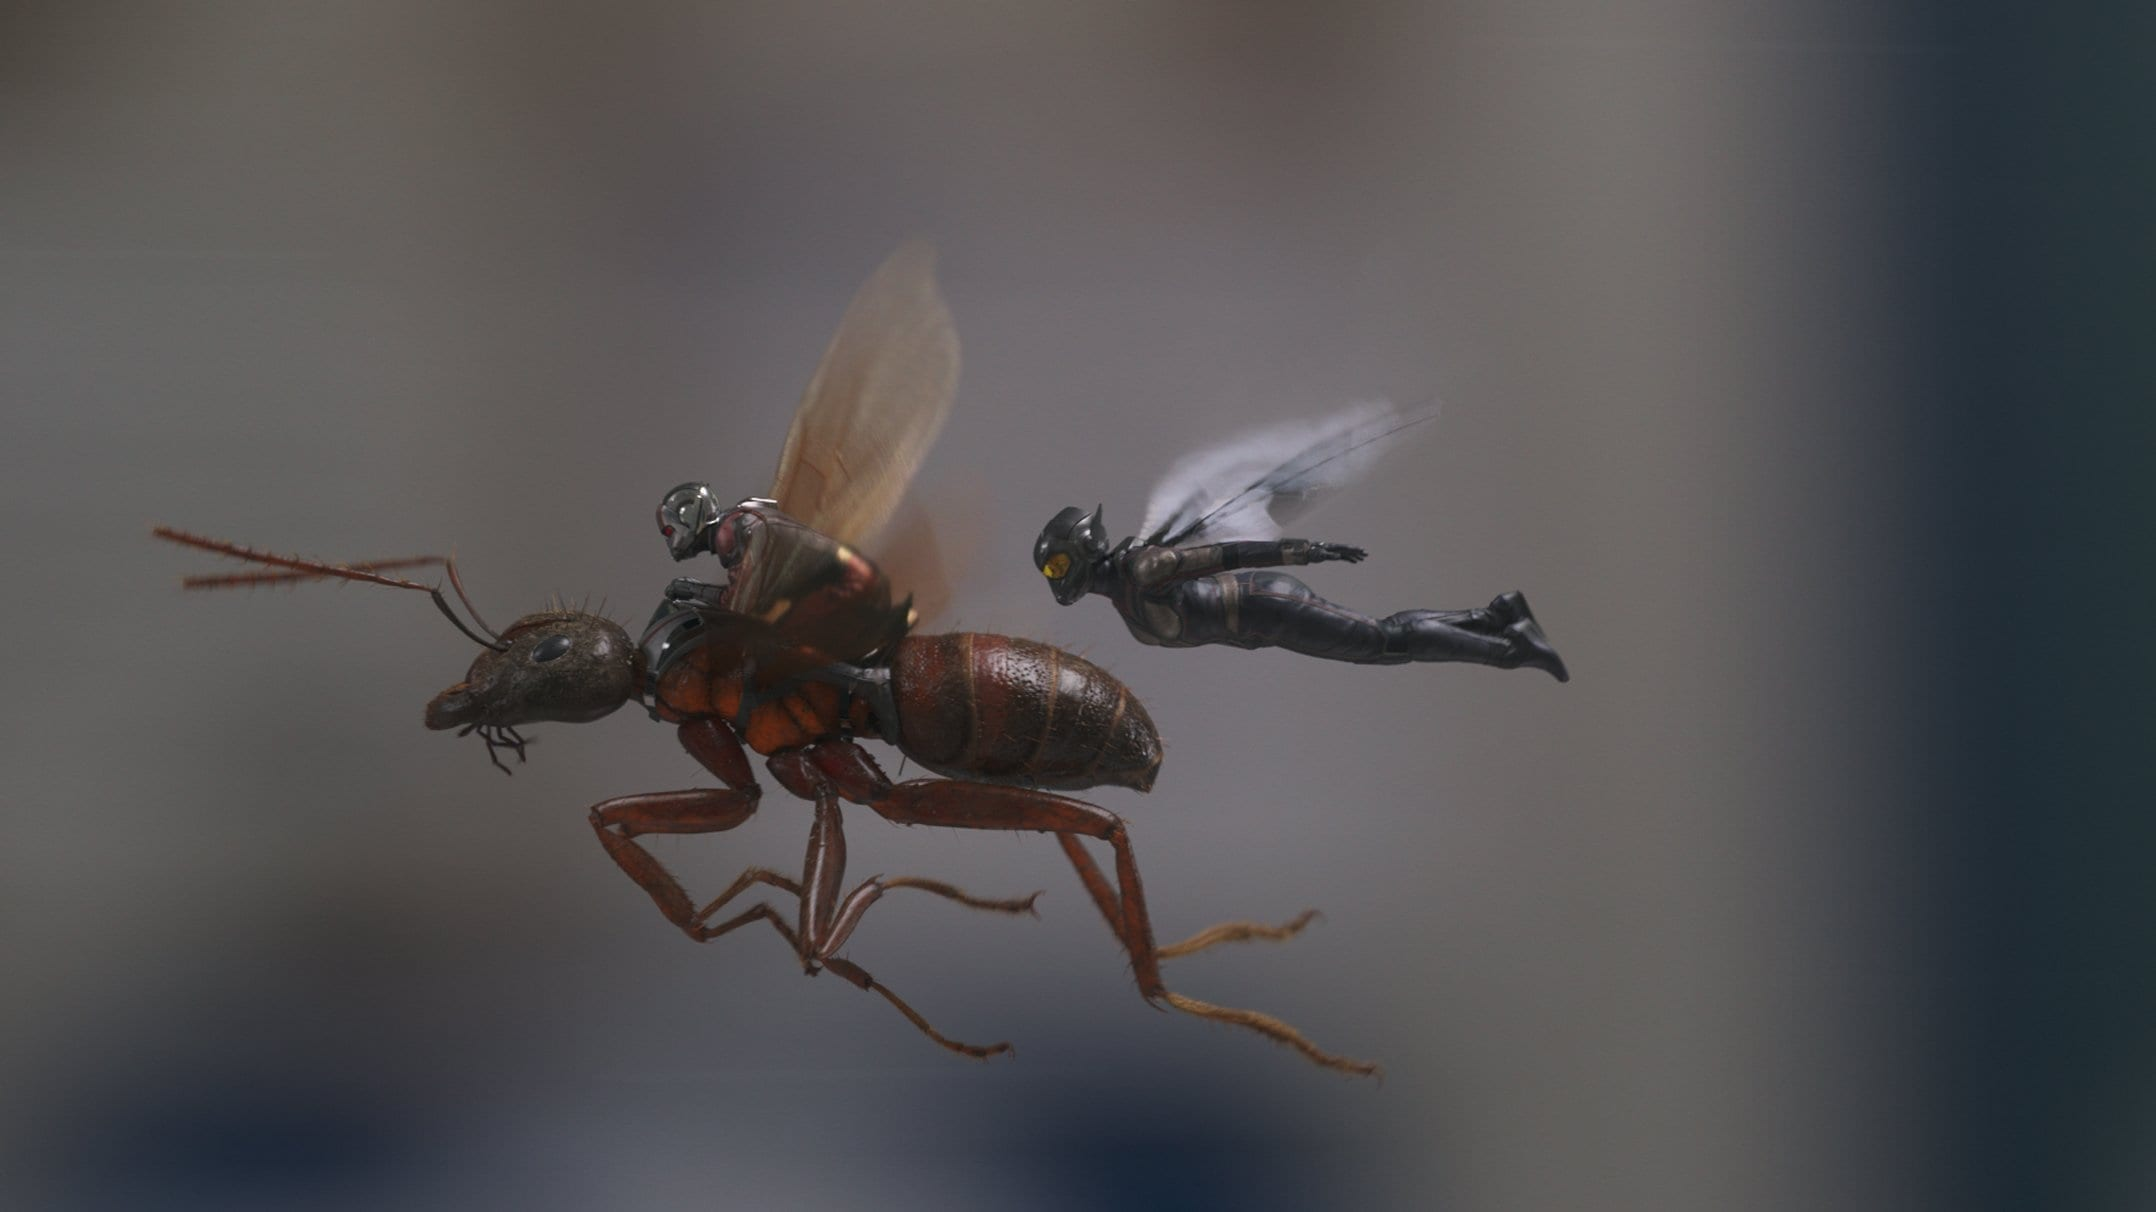 Marvel Studios ANT-MAN AND THE WASP..L to R: Ant-Man/Scott Lang (Paul Rudd) and The Wasp/Hope van Dyne (Evangeline Lilly)..Photo: Film Frame..©Marvel Studios 2018